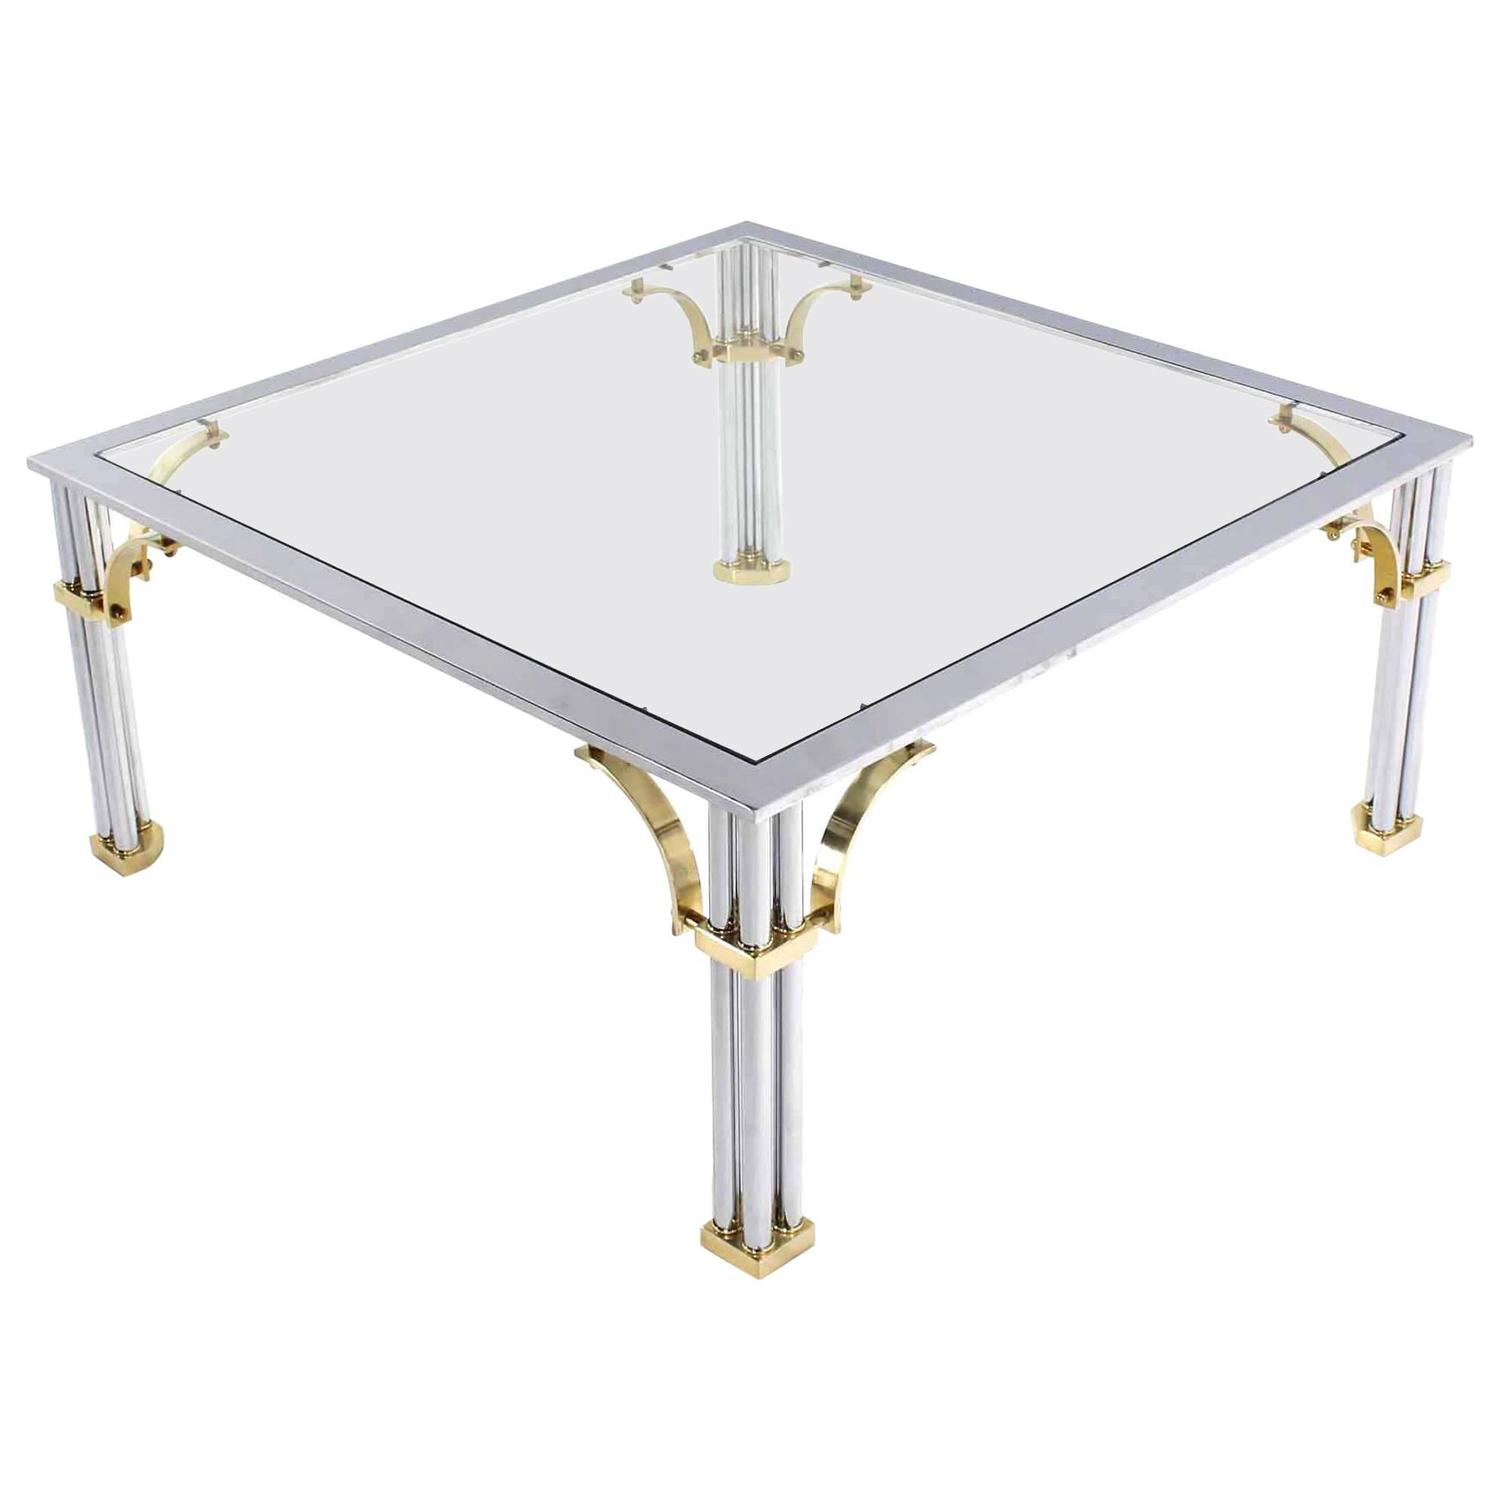 Chrome Brass Glass Top Square Coffee Table For Sale At 1stdibs